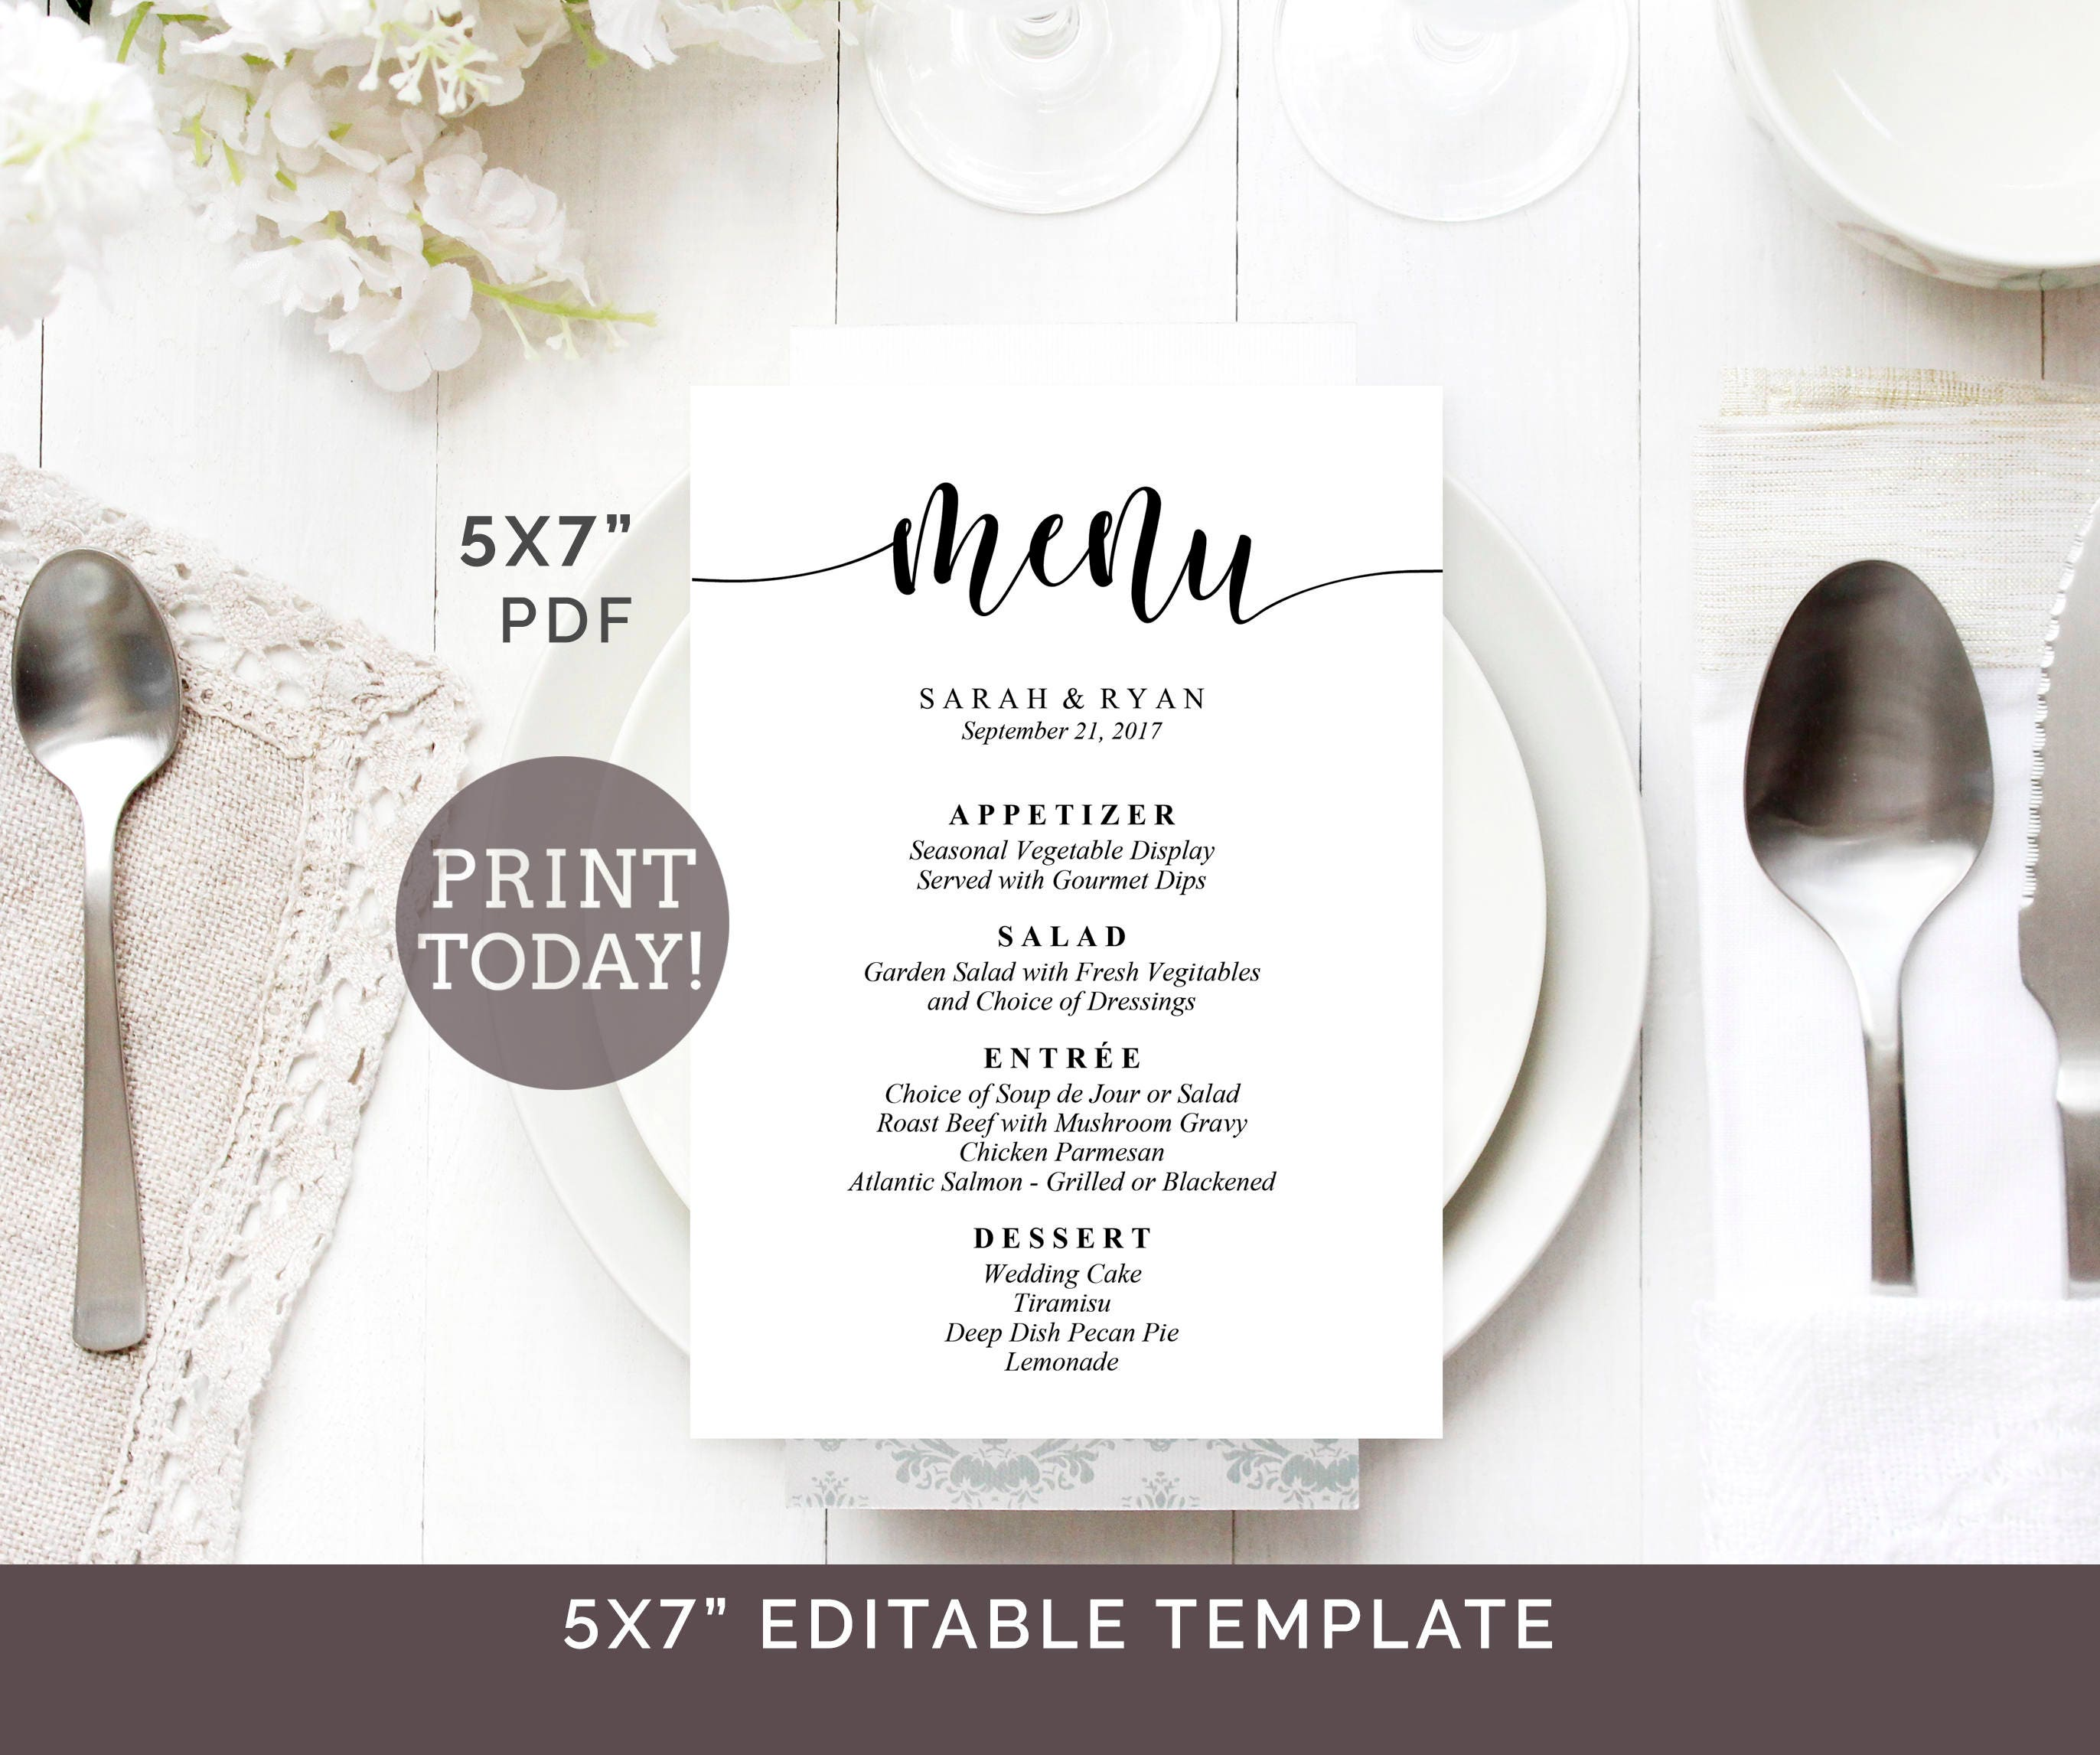 wedding menu template 5x7 menu printable. Black Bedroom Furniture Sets. Home Design Ideas